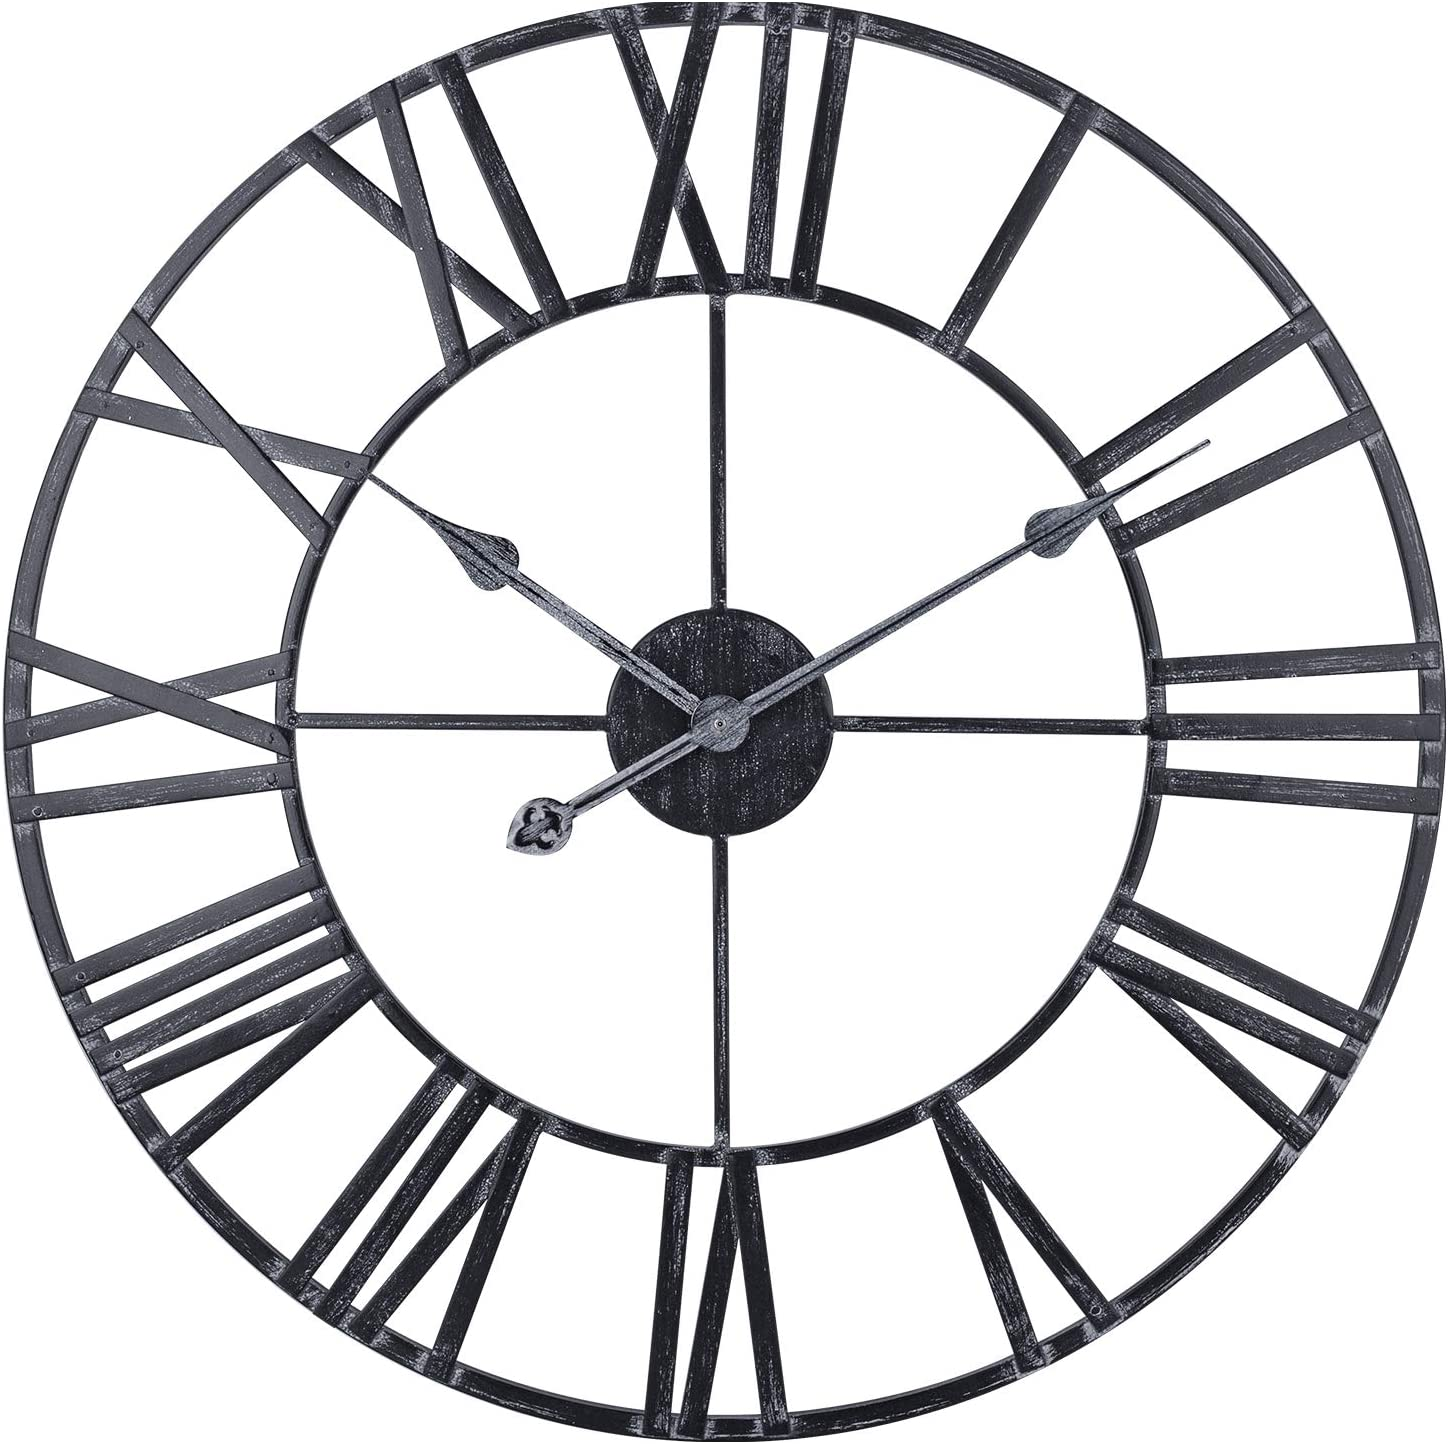 Decor Wall Clock, 24-Inch Vintage Country Metal Wall Clock with Roman Numerals, Large Silent Battery Operated Wall Clock for Home, Farmhouse, Living Room, Dining Room(Distressed Black)